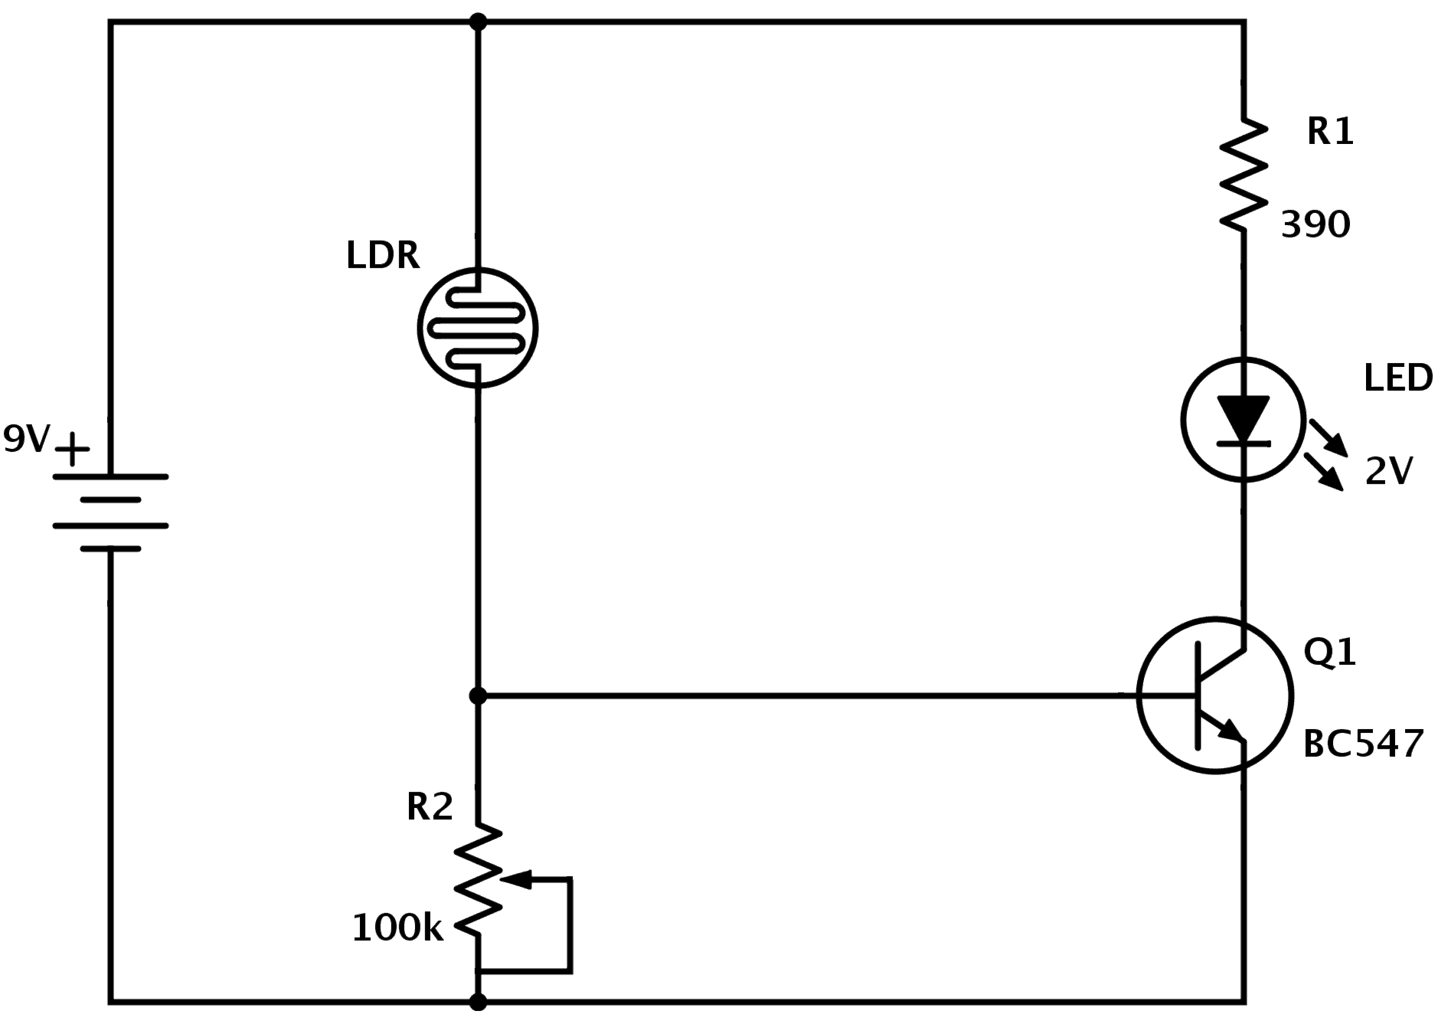 Simple Light Circuit Diagram Trusted Wiring A Ldr Build Electronic Circuits Sensor